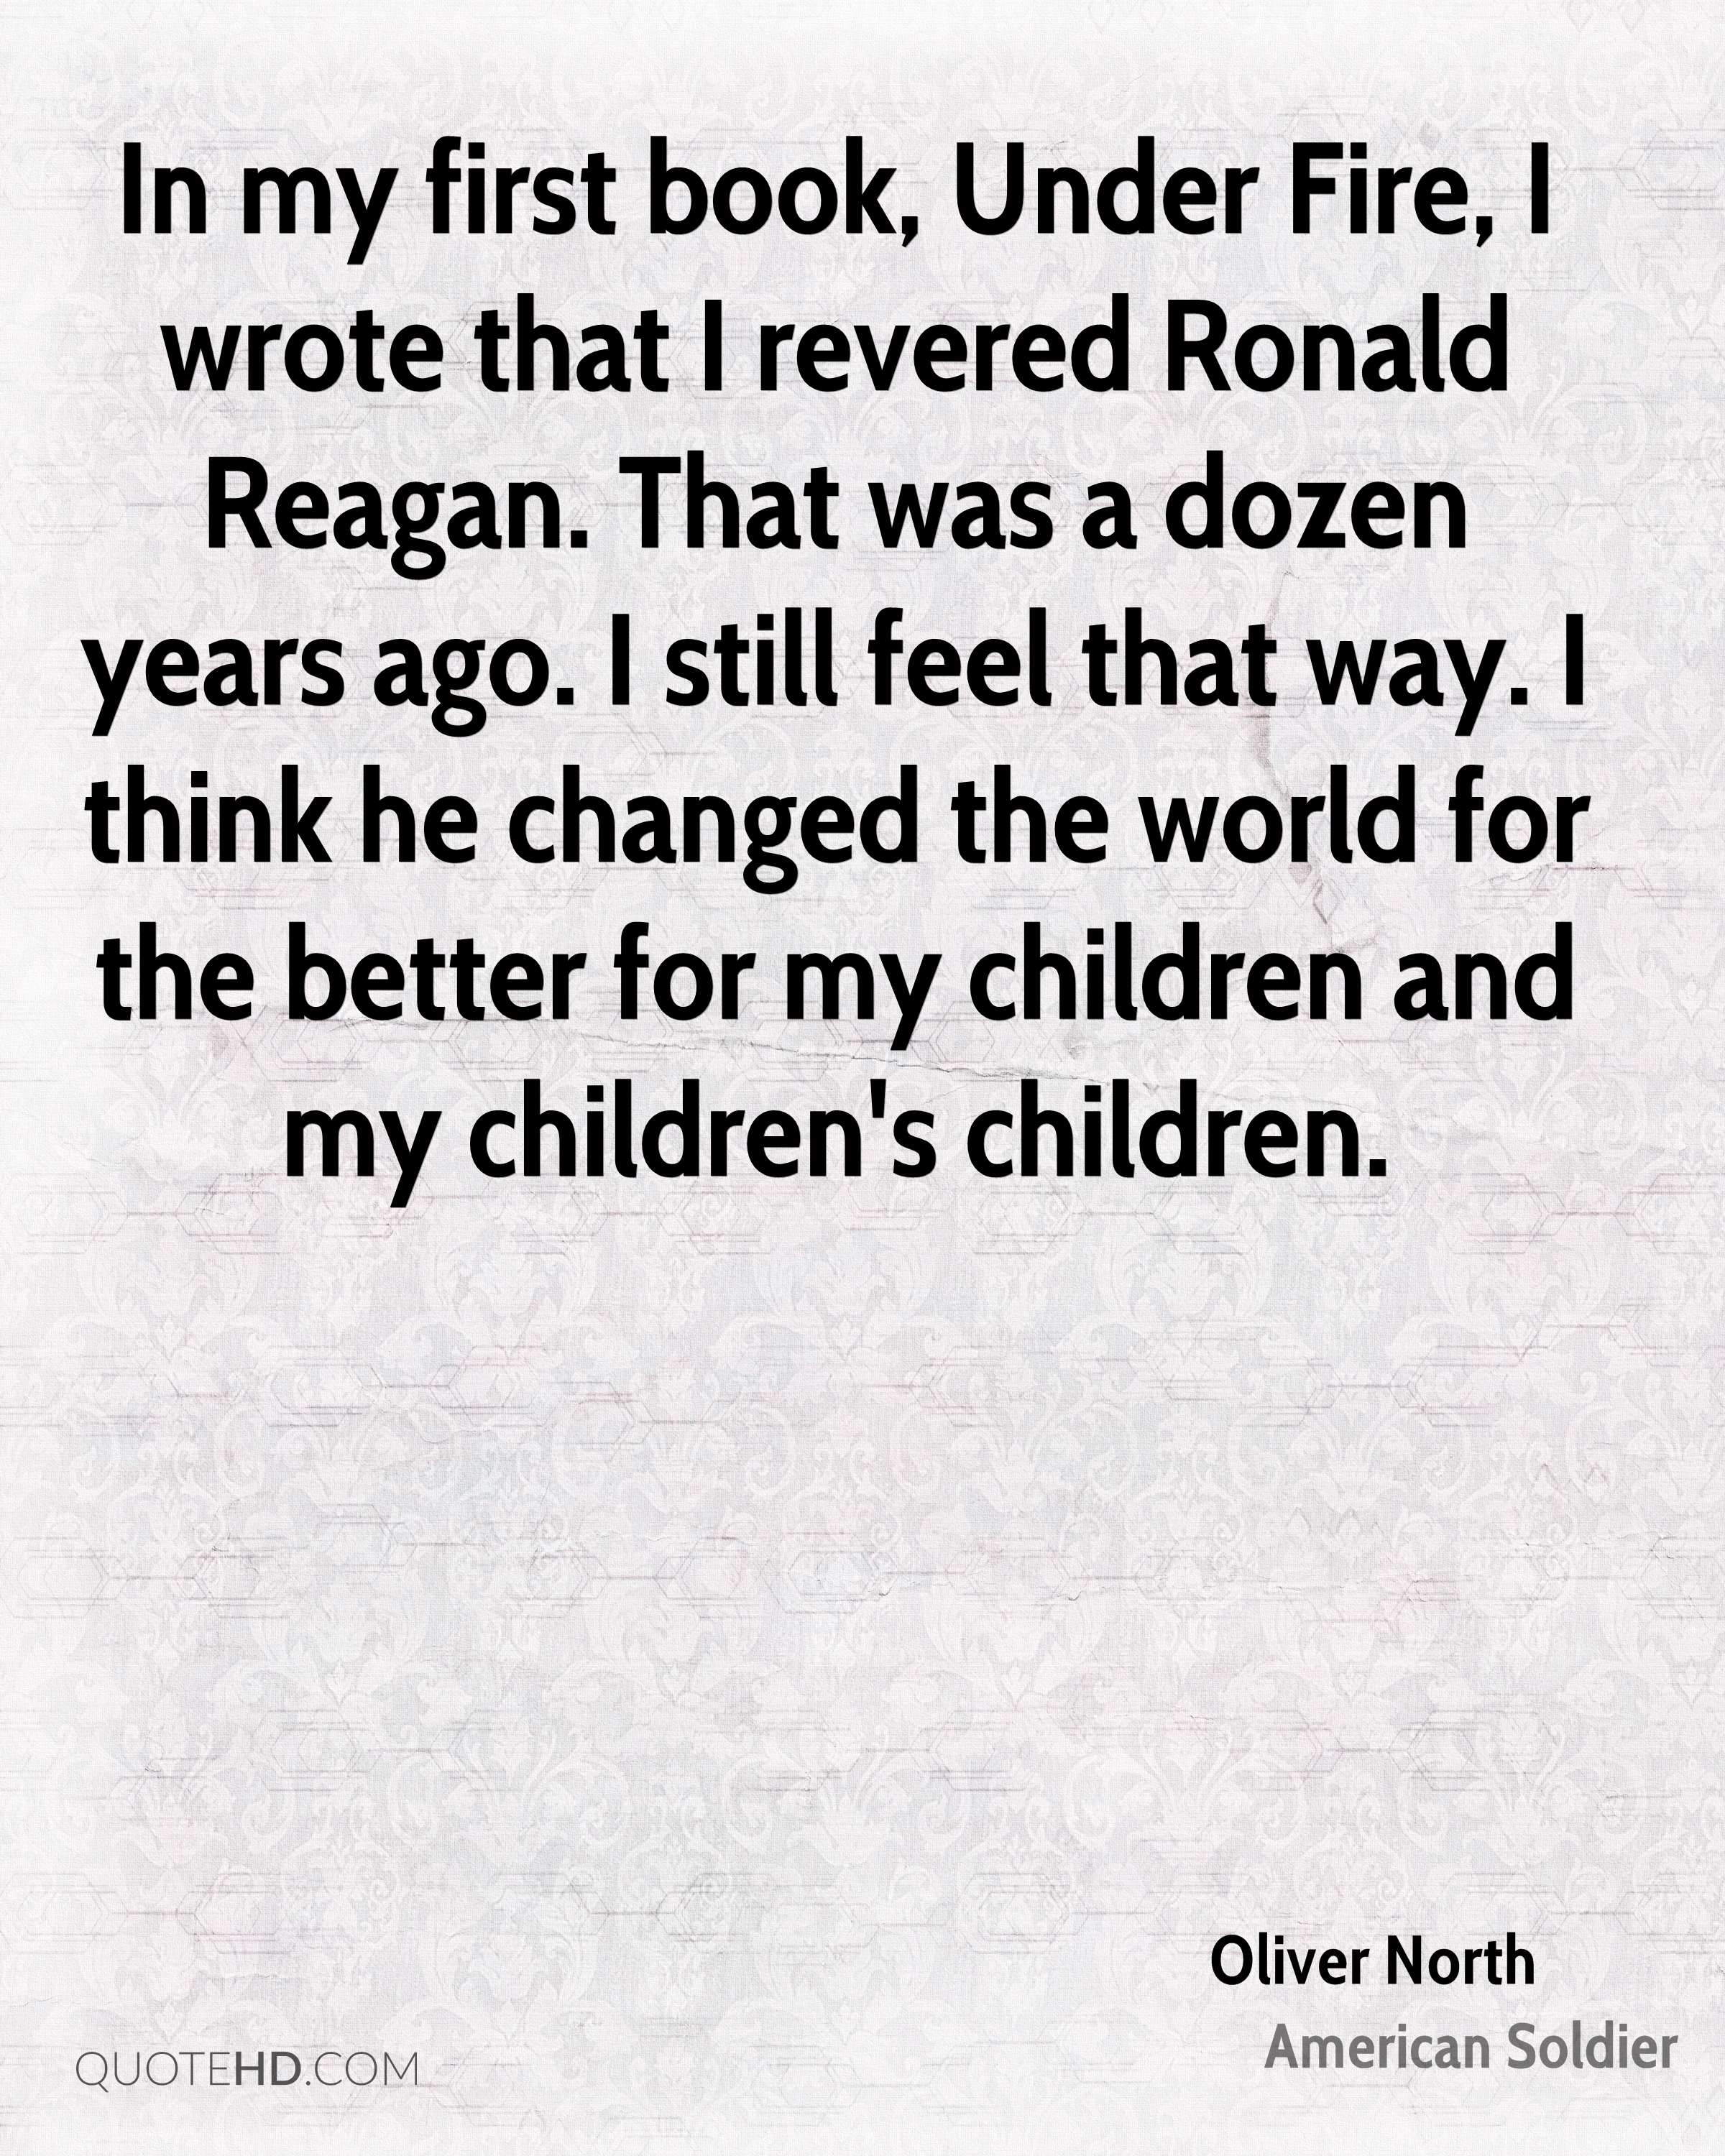 In my first book, Under Fire, I wrote that I revered Ronald Reagan. That was a dozen years ago. I still feel that way. I think he changed the world for the better for my children and my children's children.